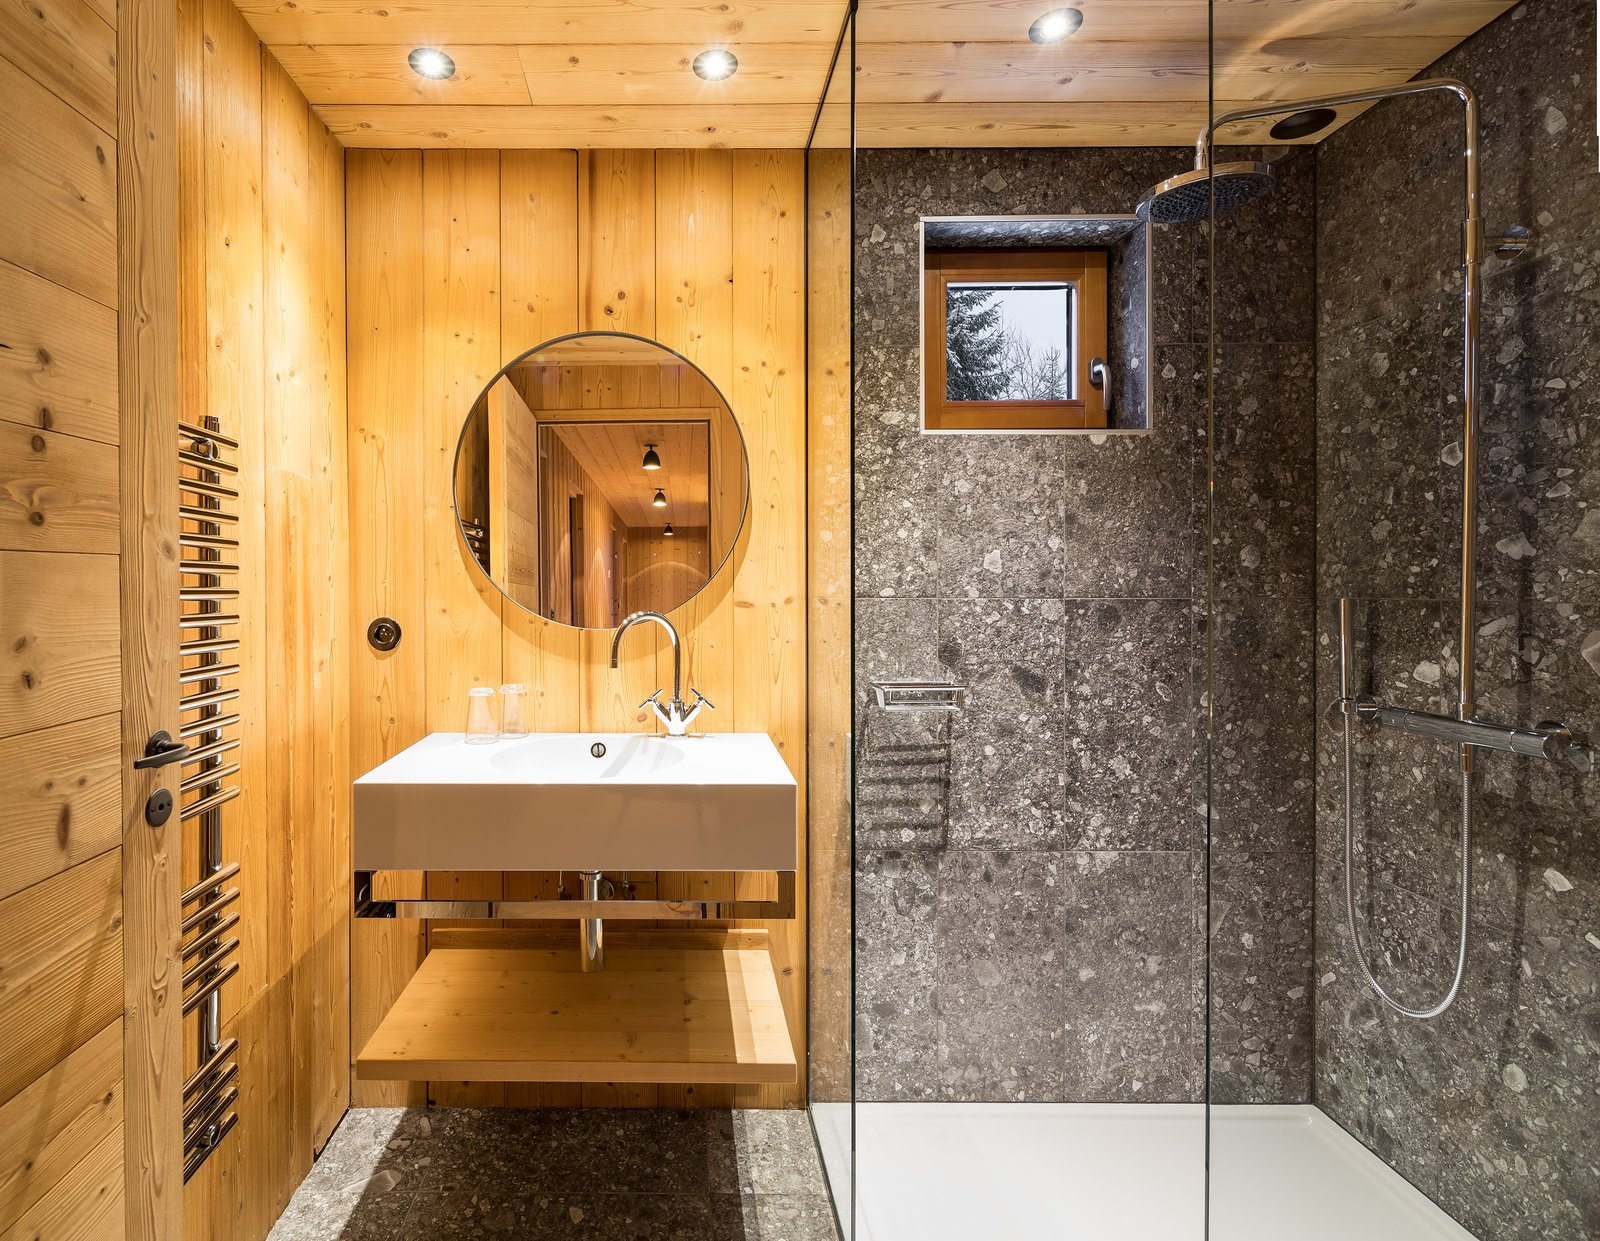 Bath Room, Wall Mount Sink, Ceramic Tile Wall, Ceramic Tile Floor, and Recessed Lighting  Mountain House